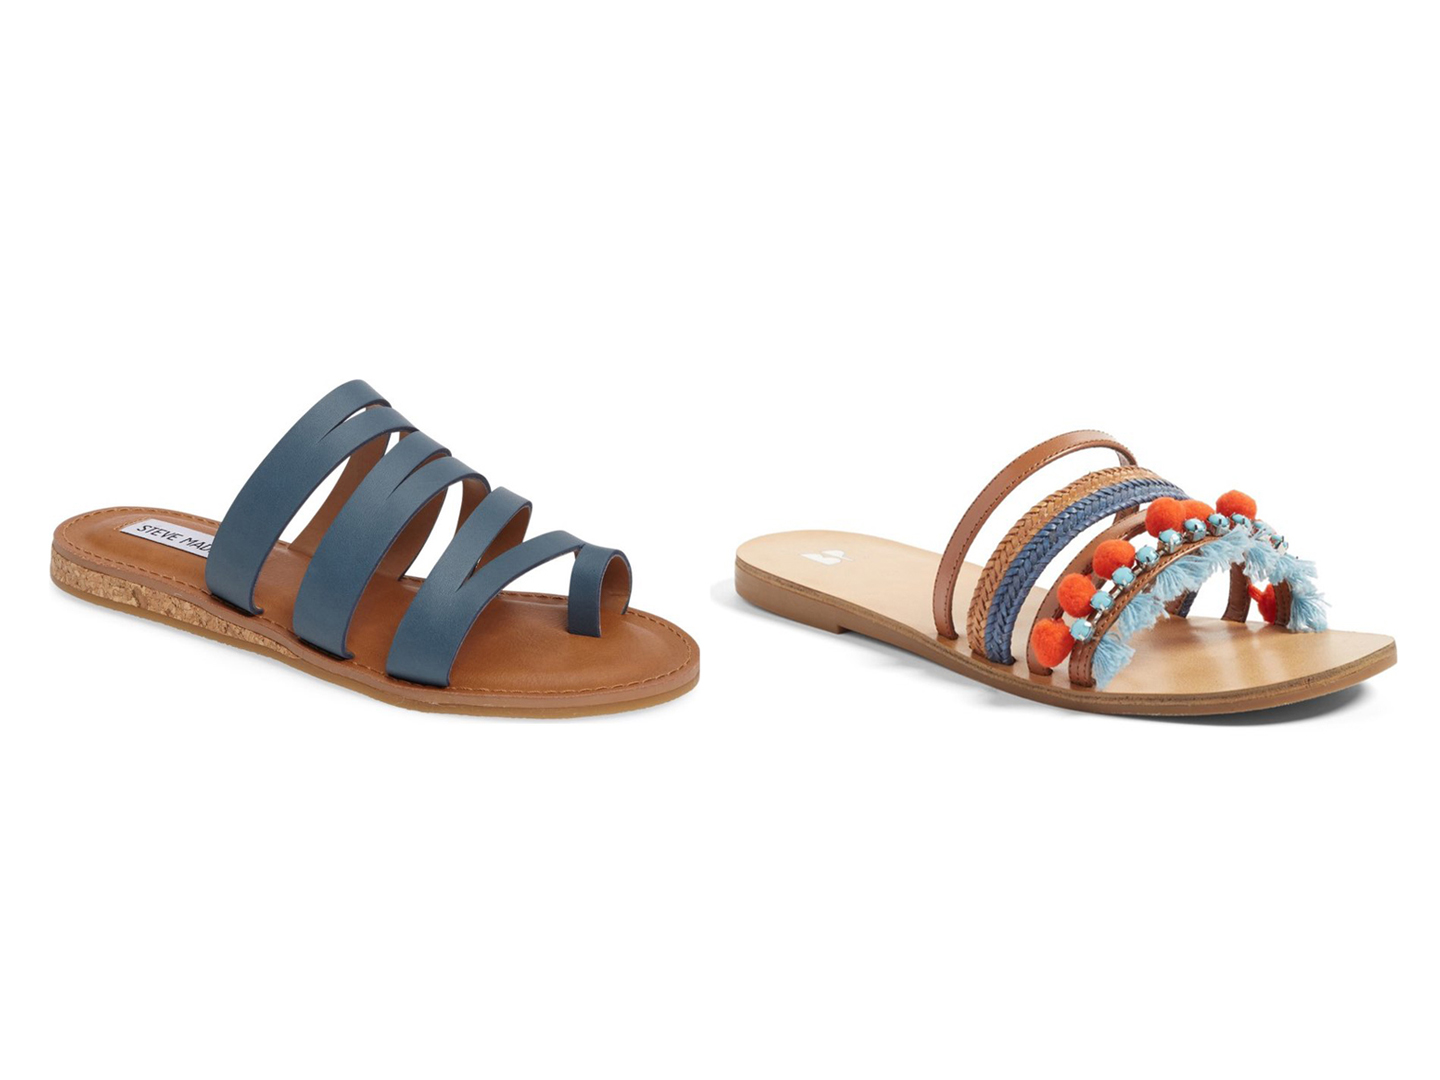 Stylish and Comfortable Summer Sandals